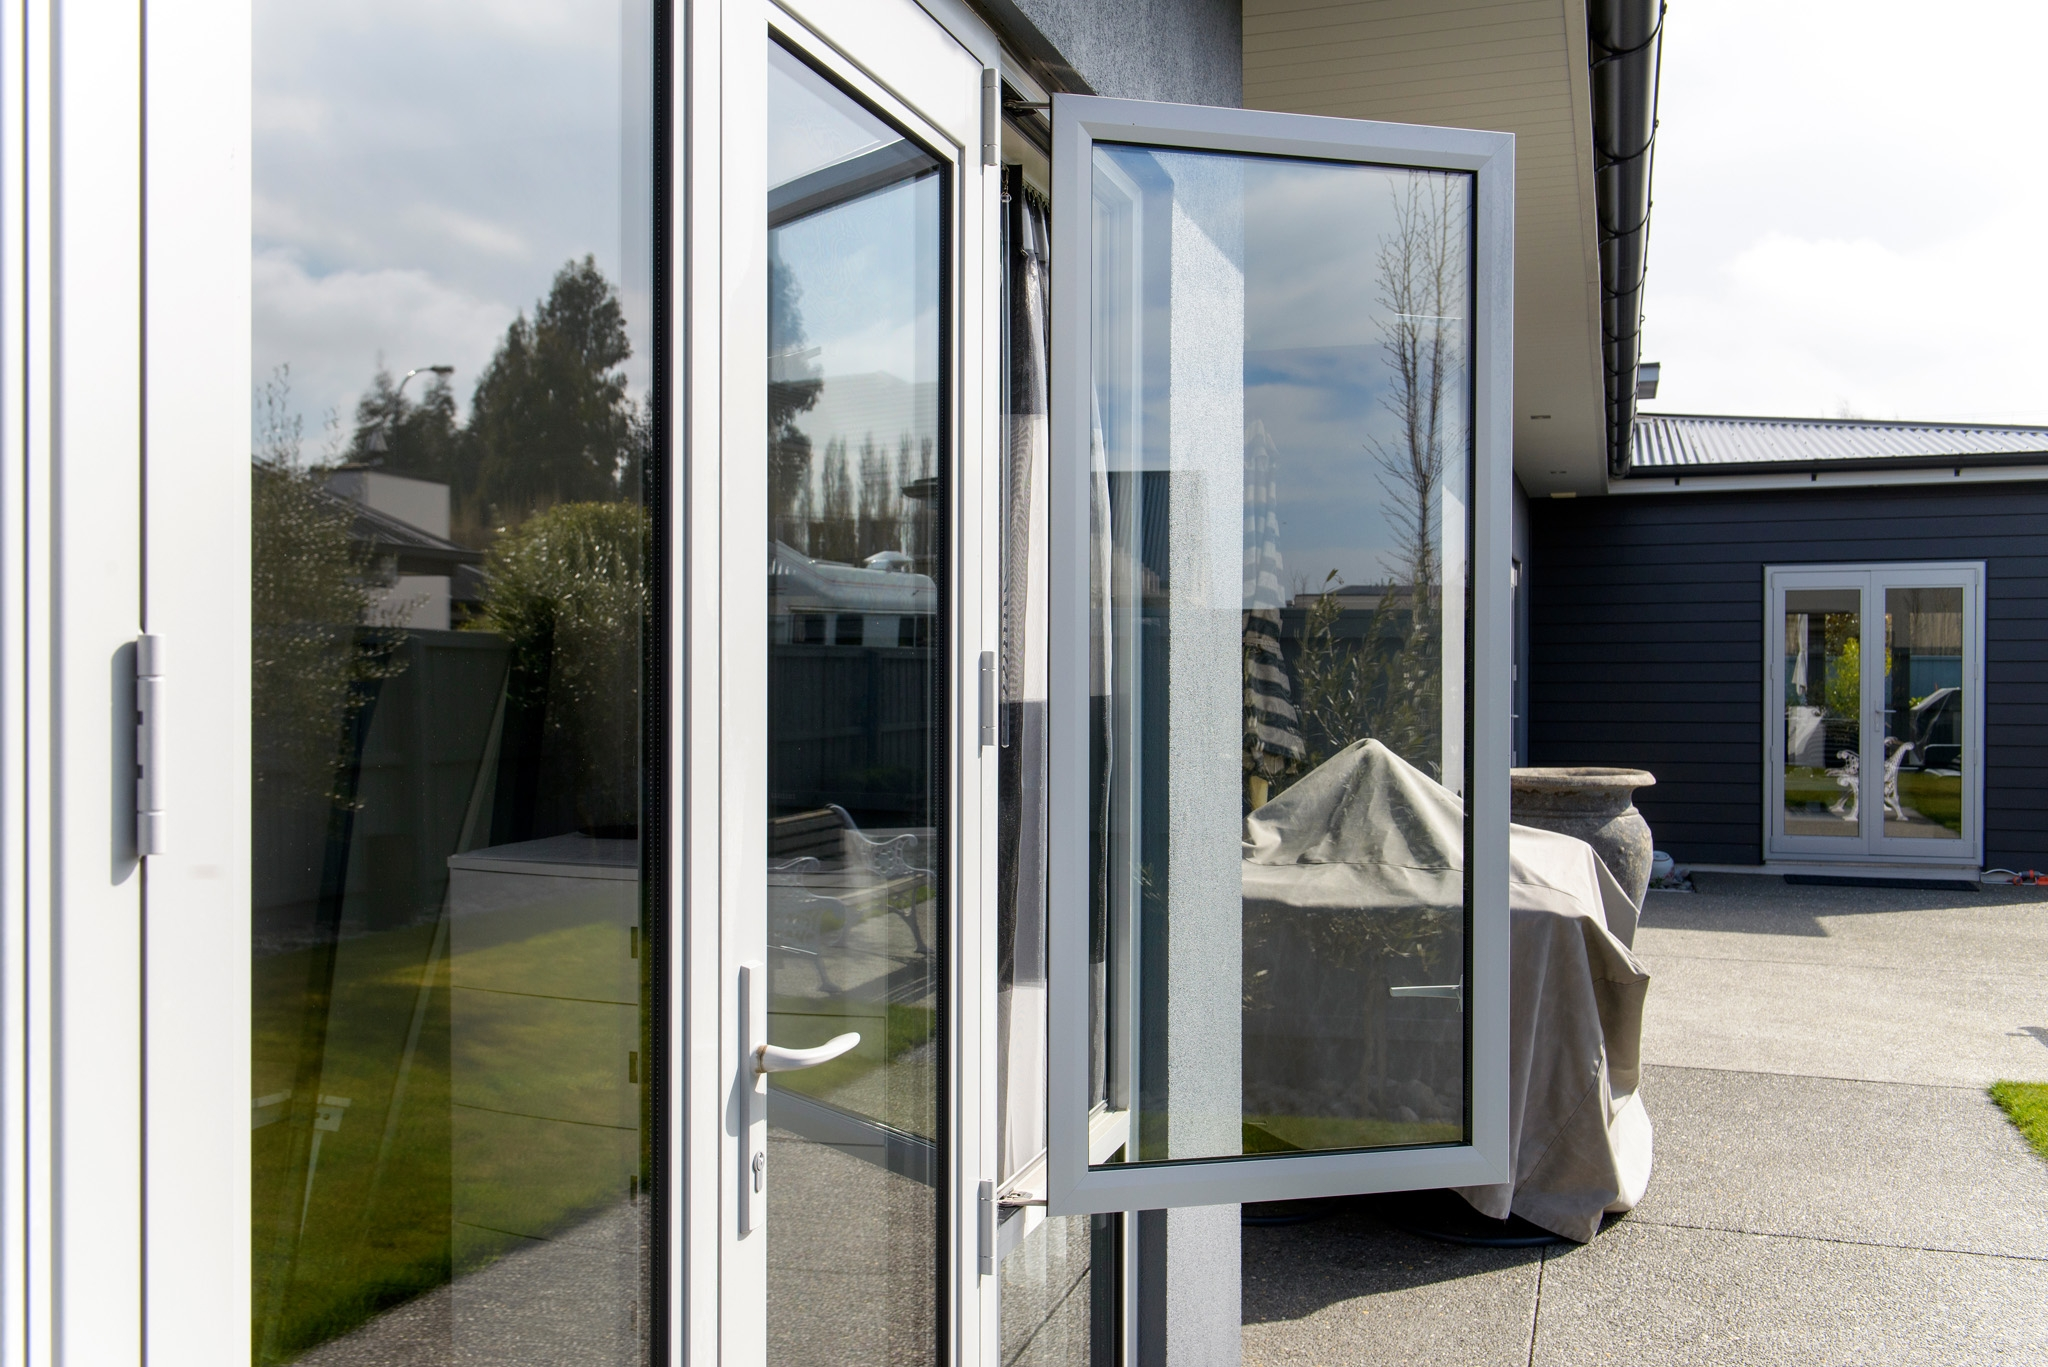 Aluminium Sliding Door Repairs Christchurchaluminium windows doors christchurch canterbury aluminium